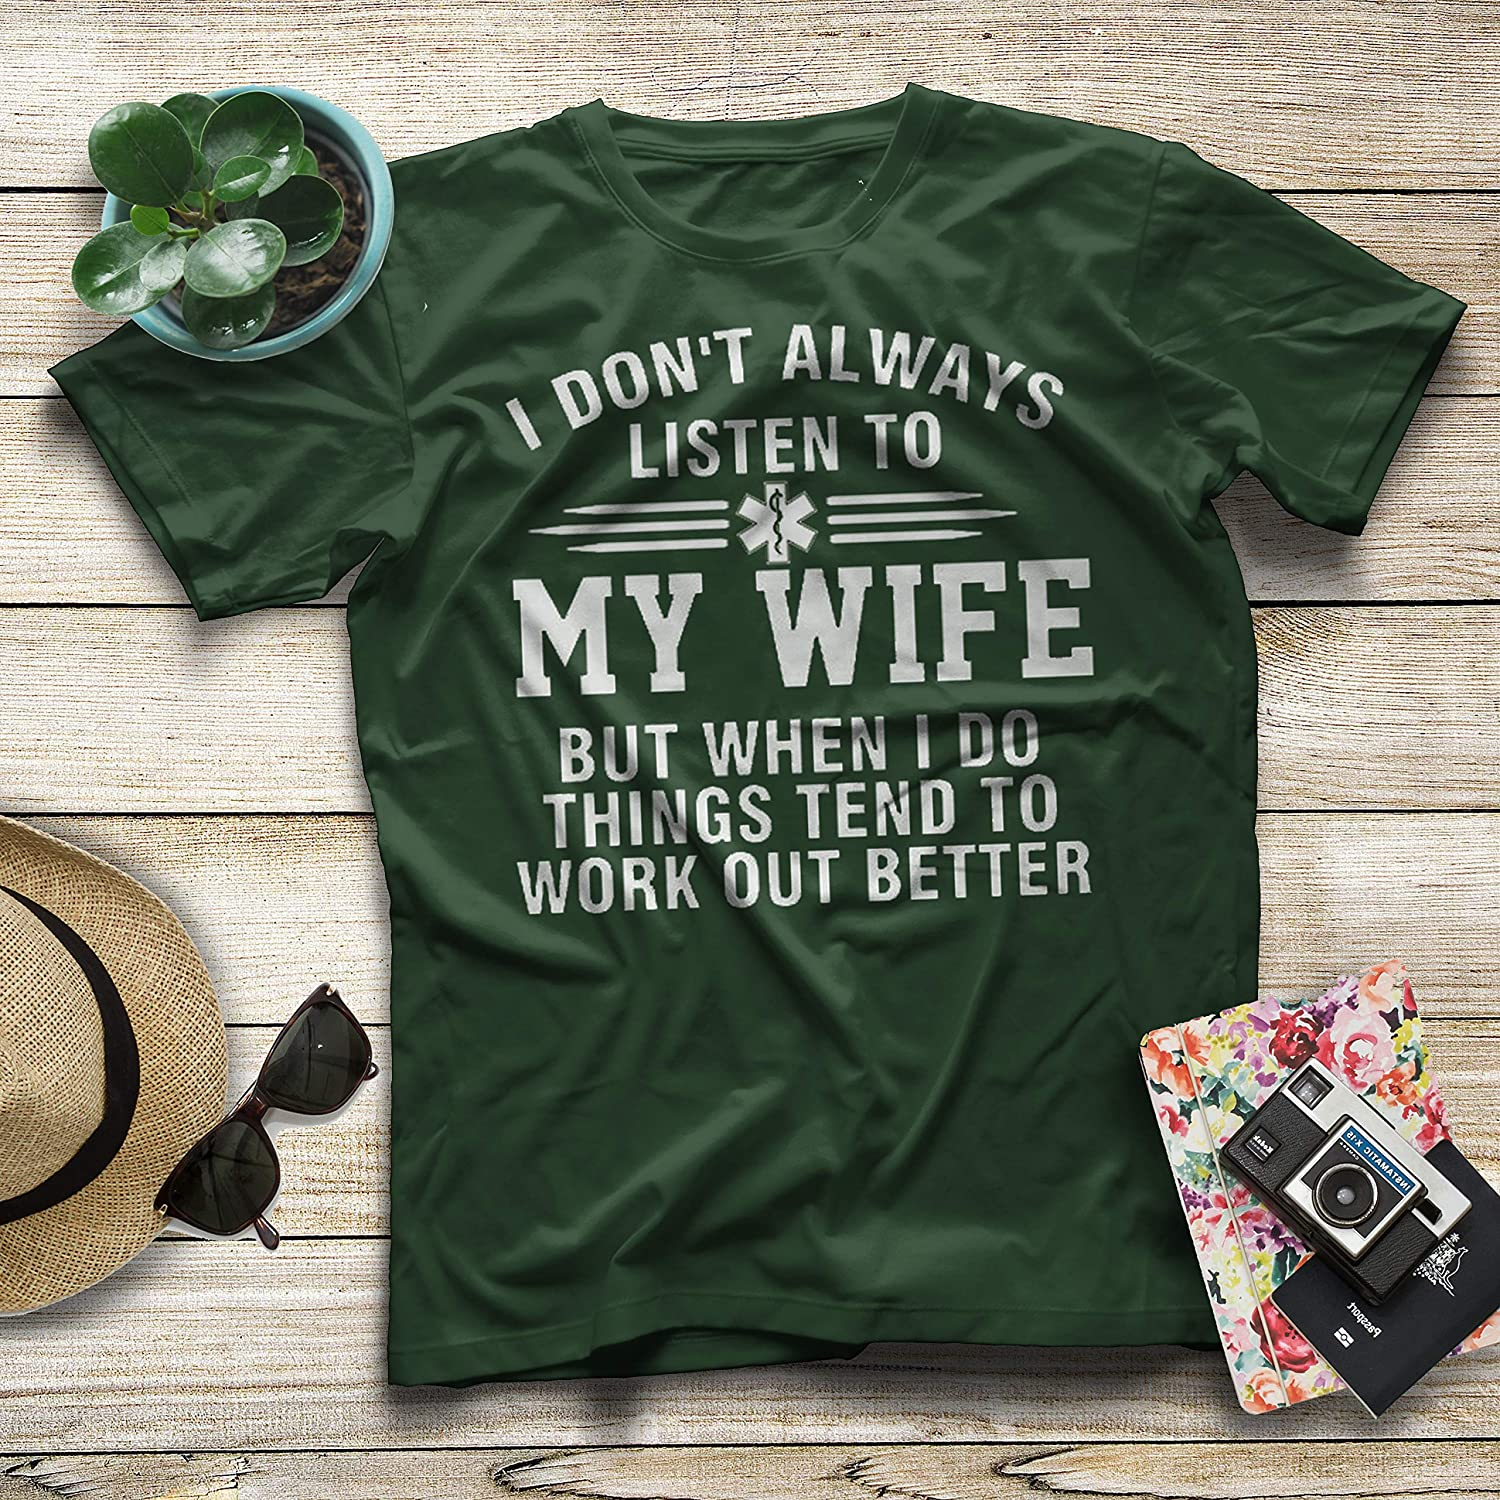 I Dont Always Listen to My Wife When I Do Things Tend to Work Out Better Nurse T-Shirt